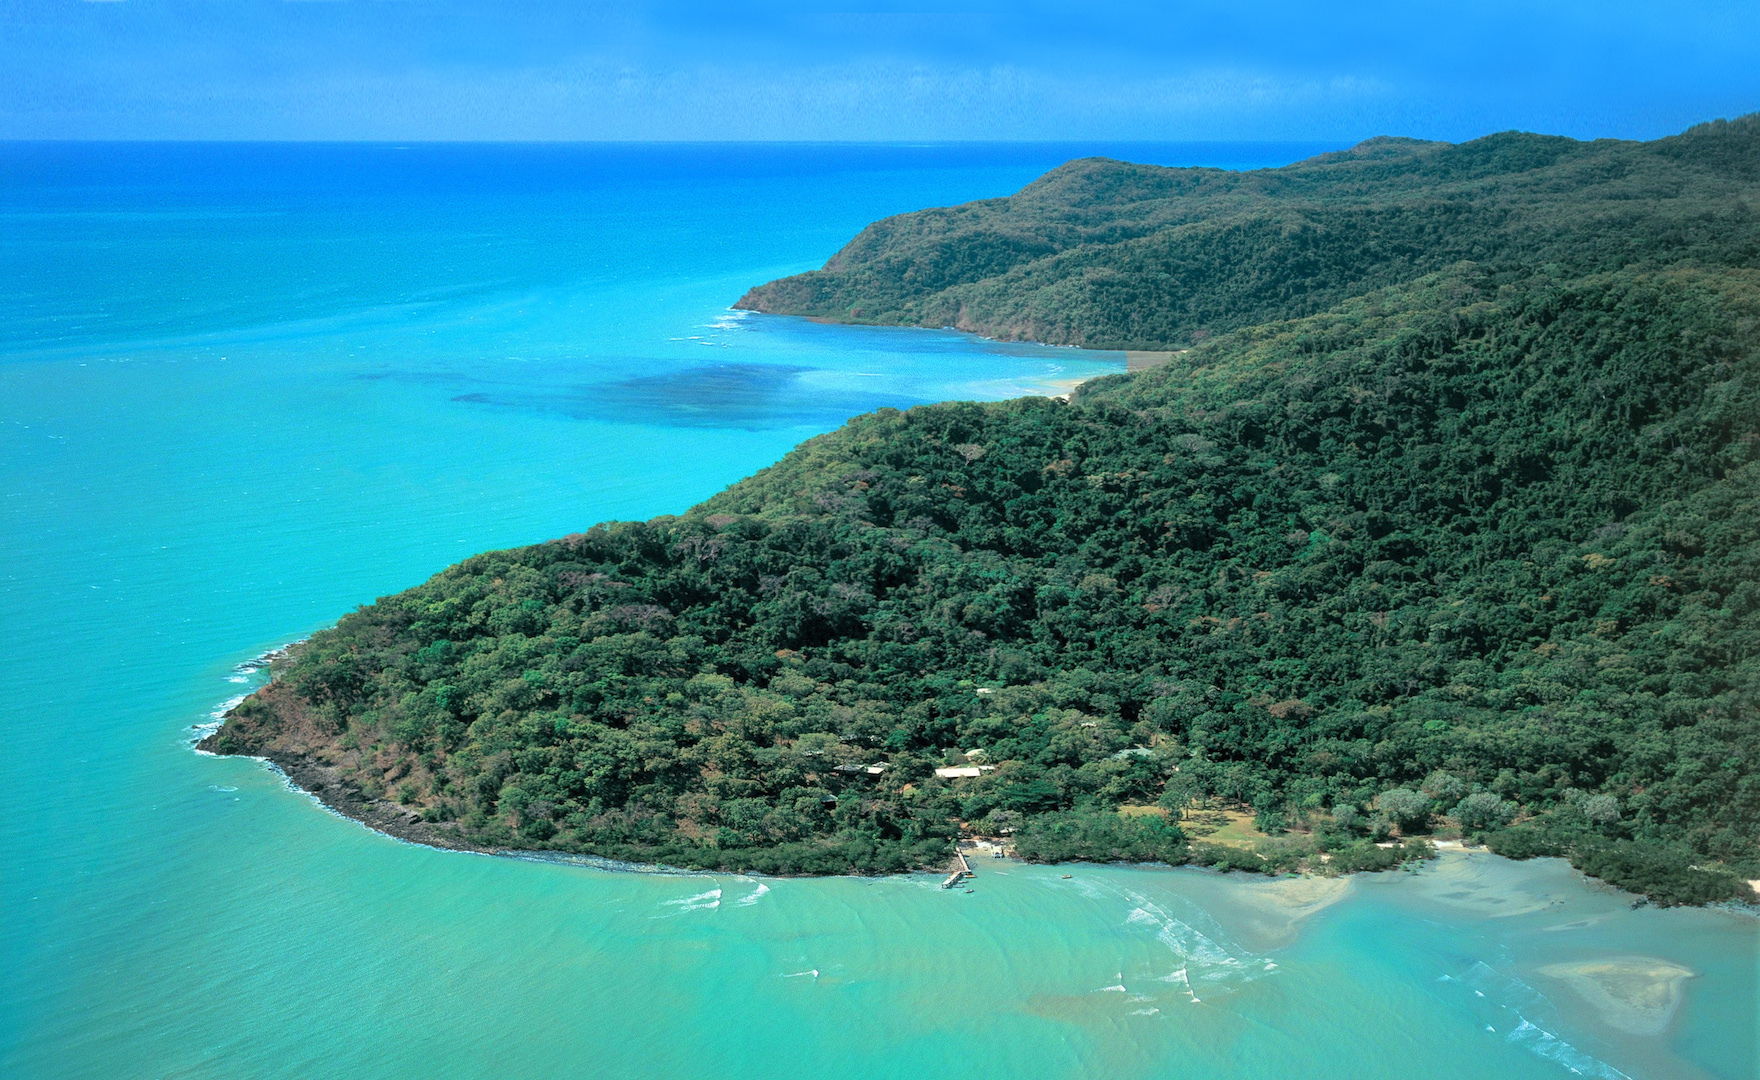 Autre pour l Vente à Bloomfield Lodge - Beautifully remote Queensland,4895 Australie